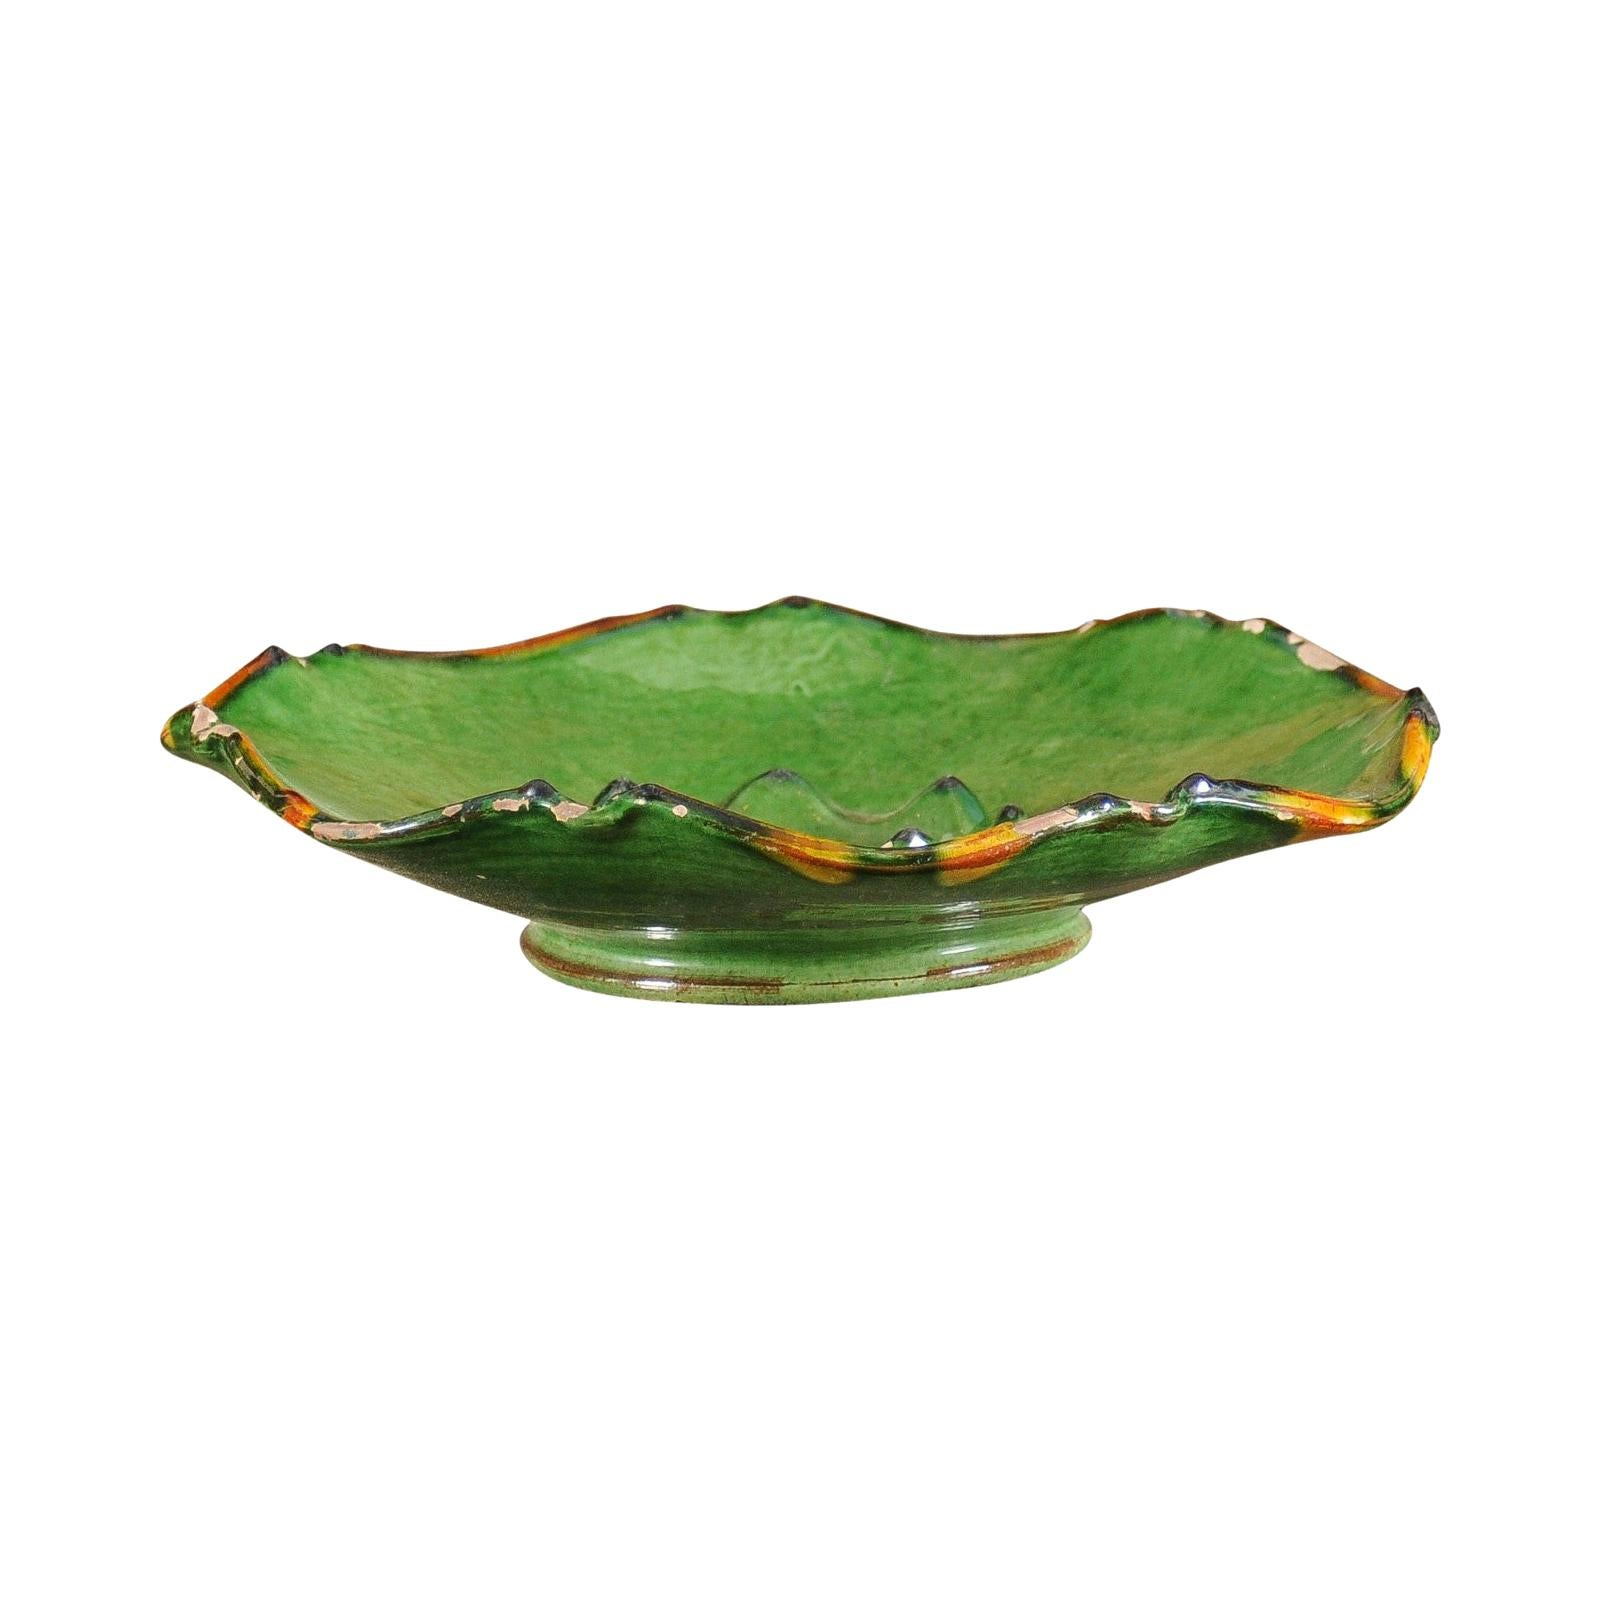 French Provincial 1850s Green Glazed Hors d'Œuvres Dish with Scalloped Edges